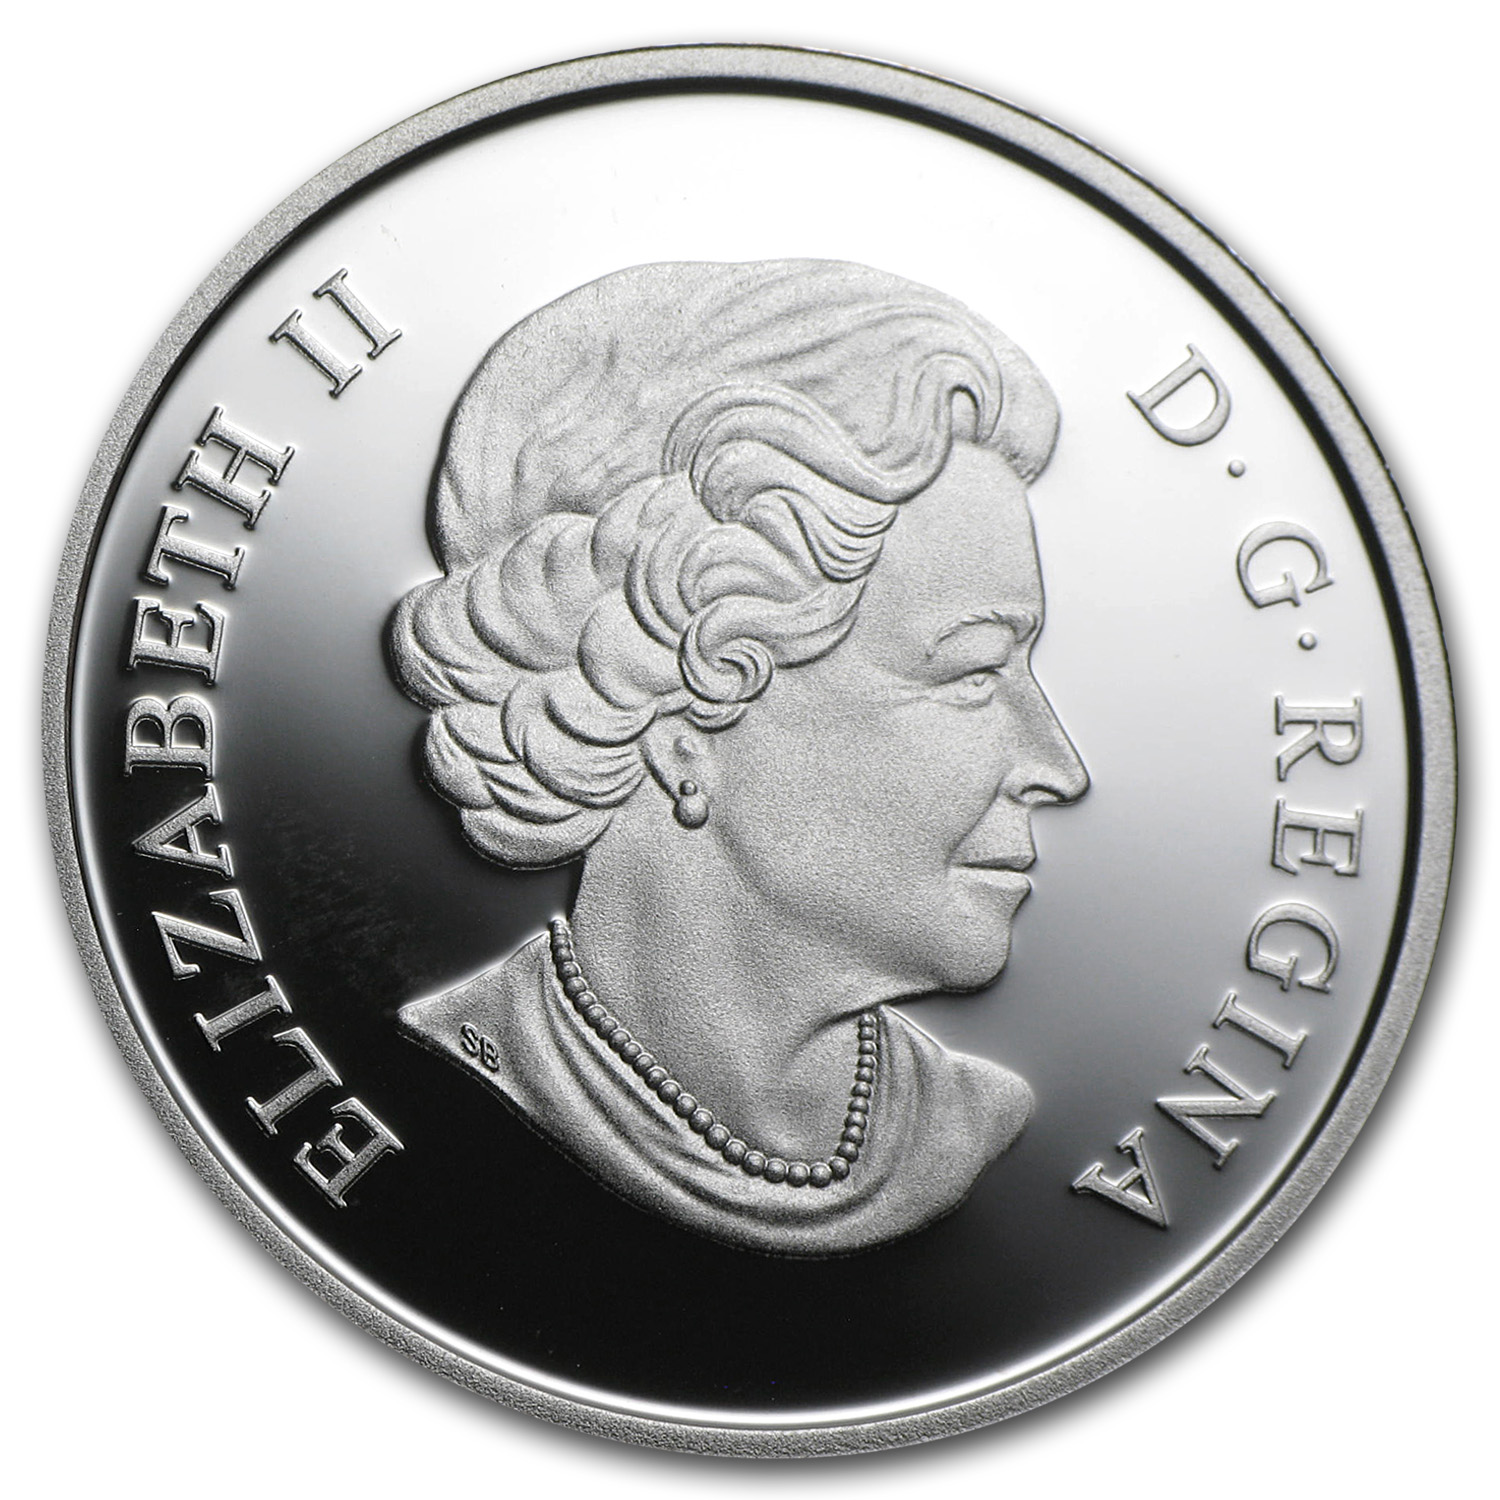 2011 Ultra-High Relief Silver Canadian $15 - The Prince of Wales